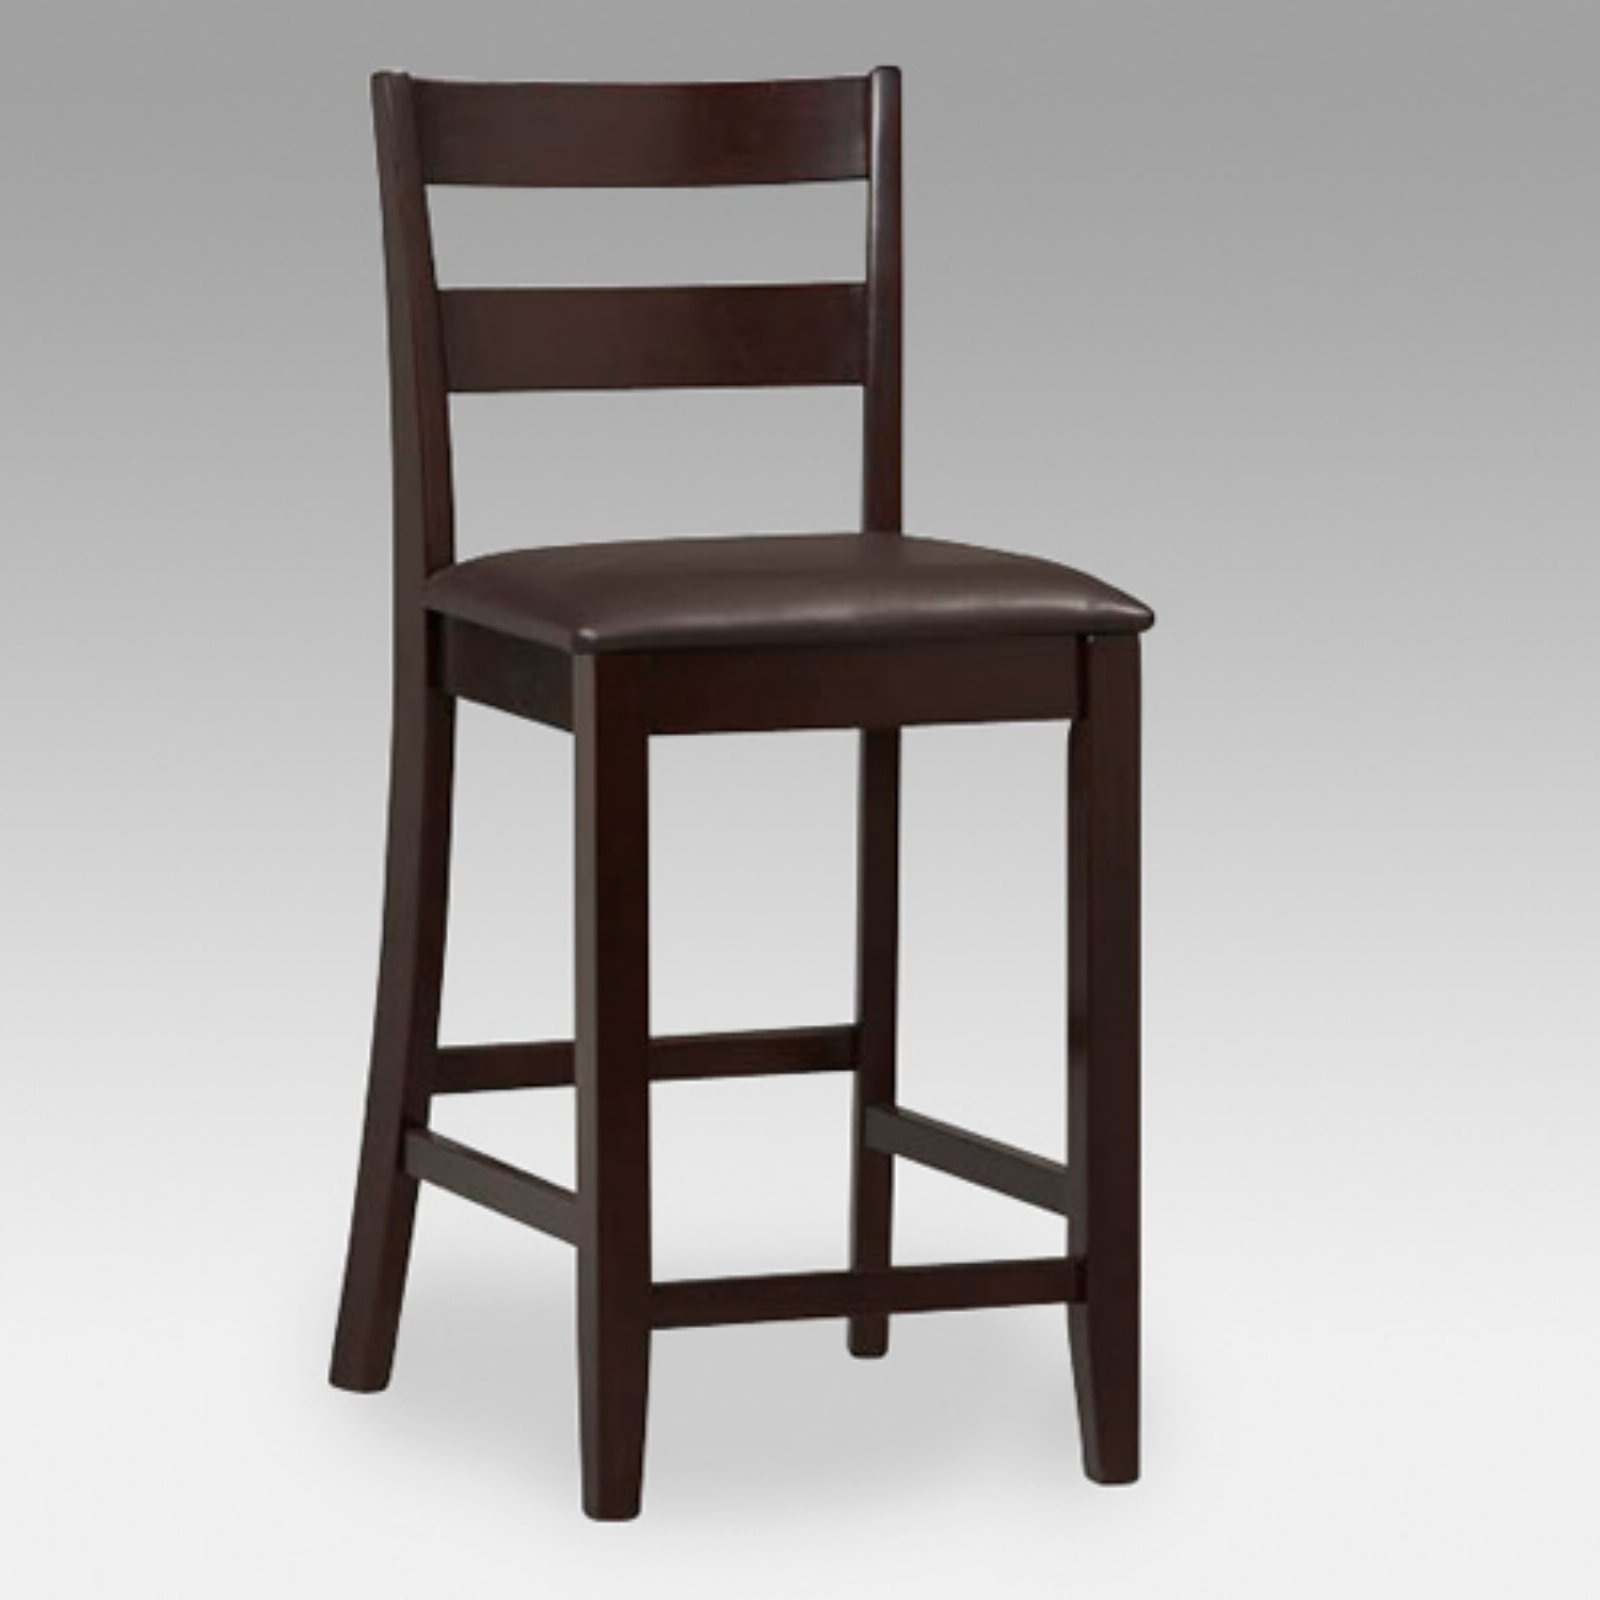 Linon Triena Collection Soho Counter Stool, Espresso, 24 inch Seat Height